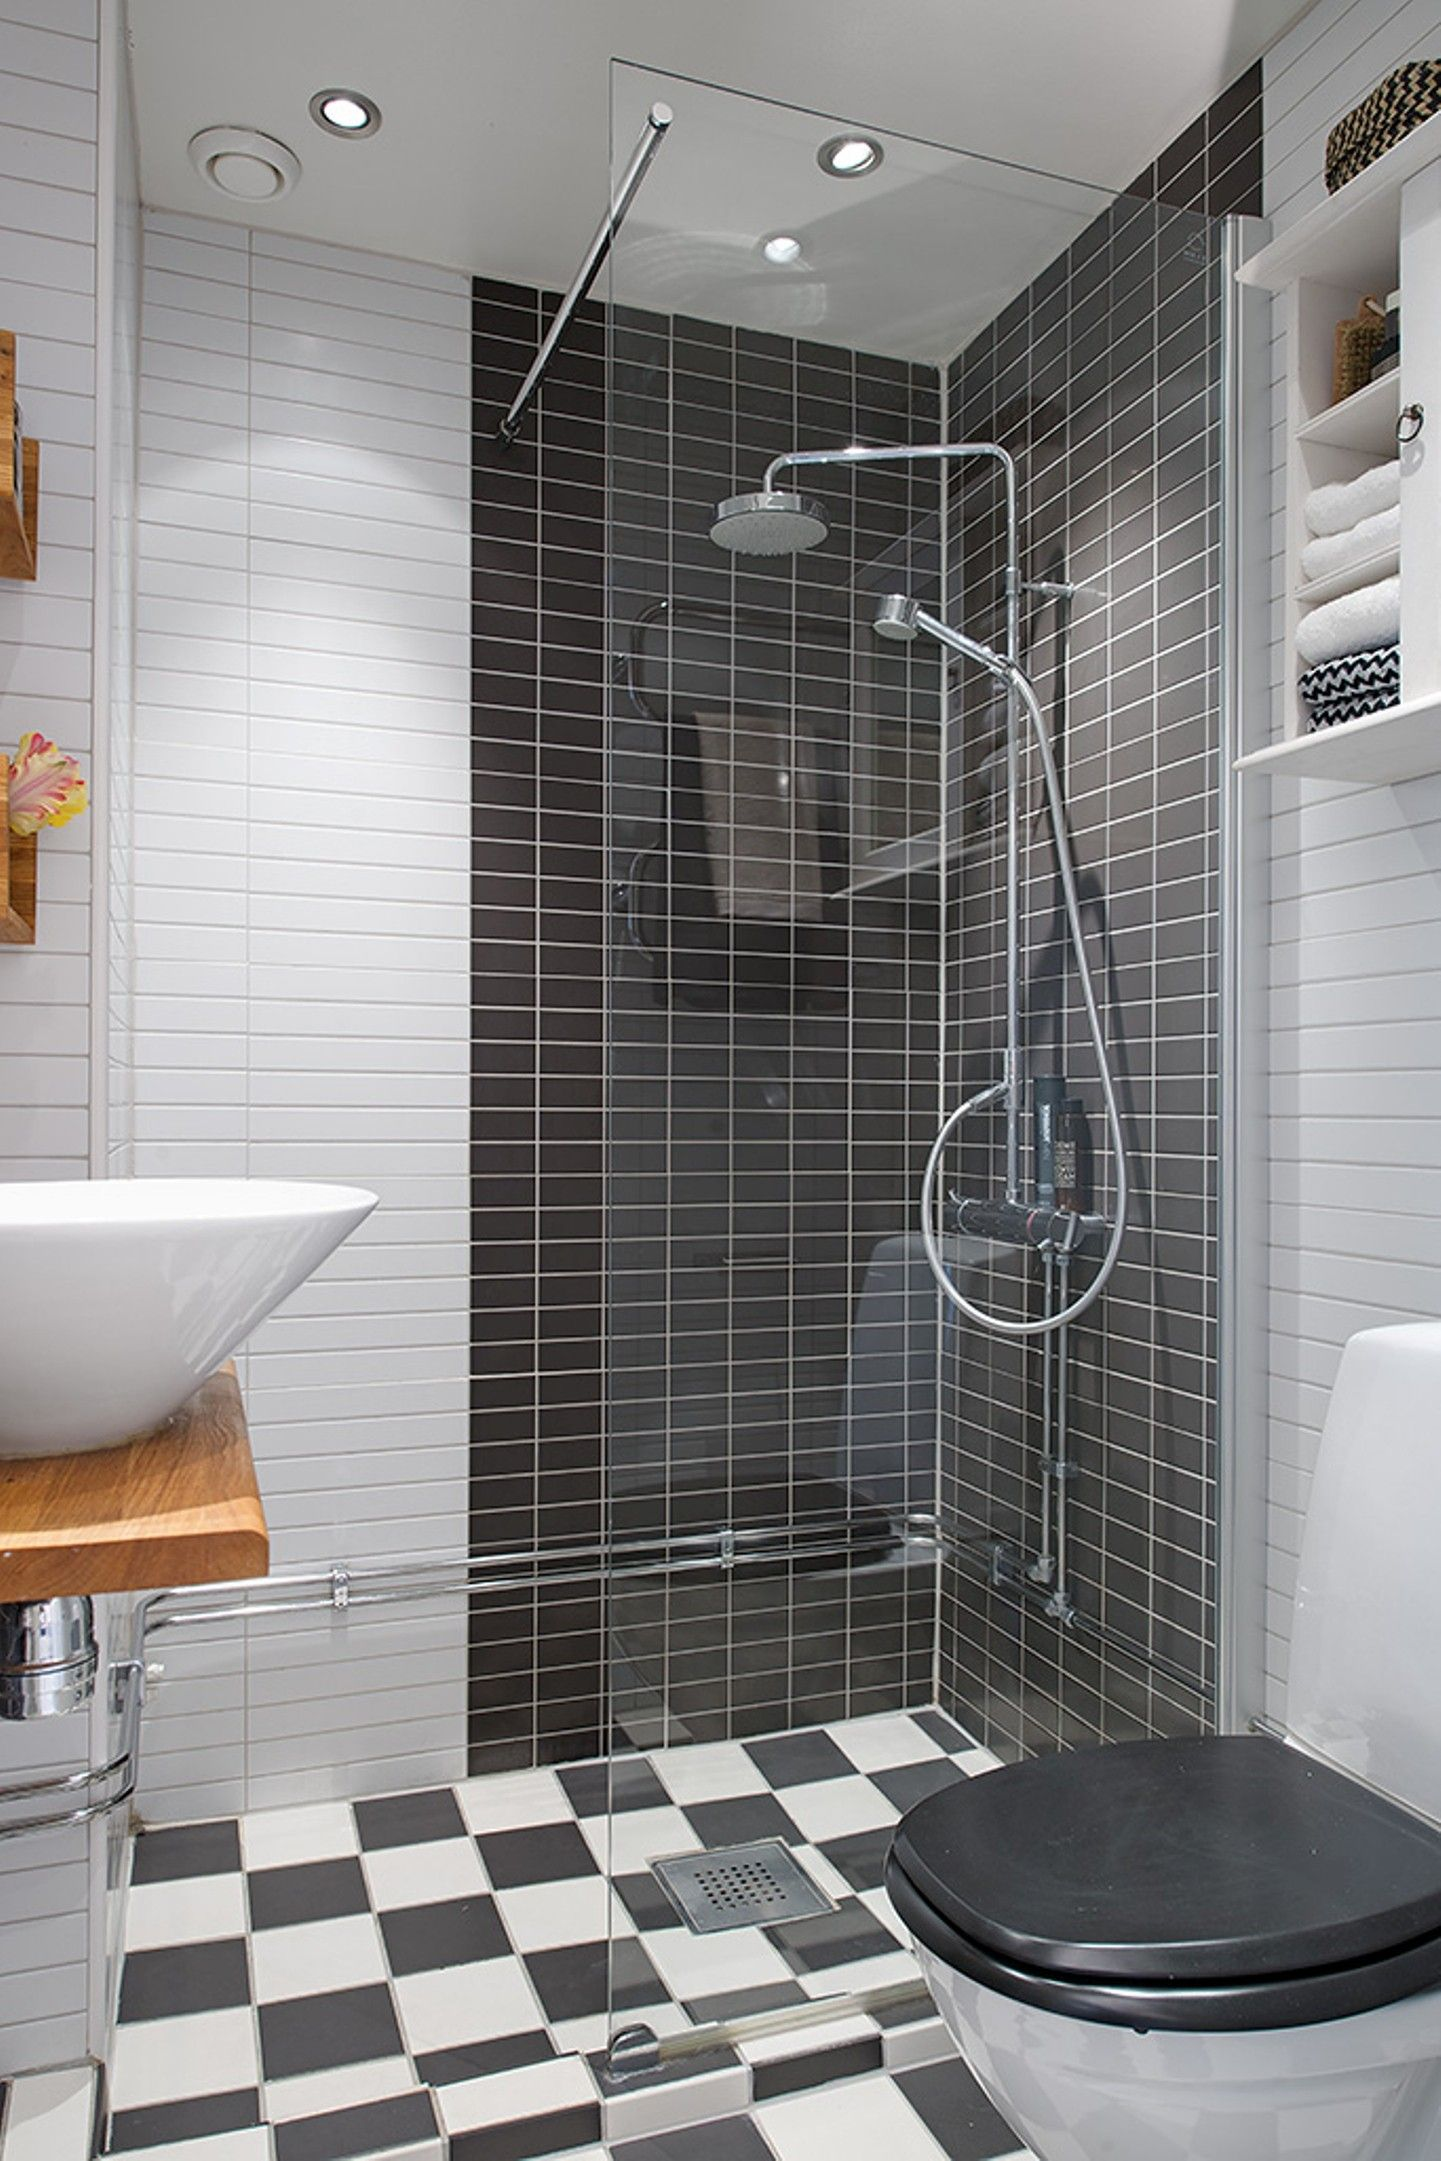 bathroom-interior-ideas-modern-shower-style-with-black-and-white